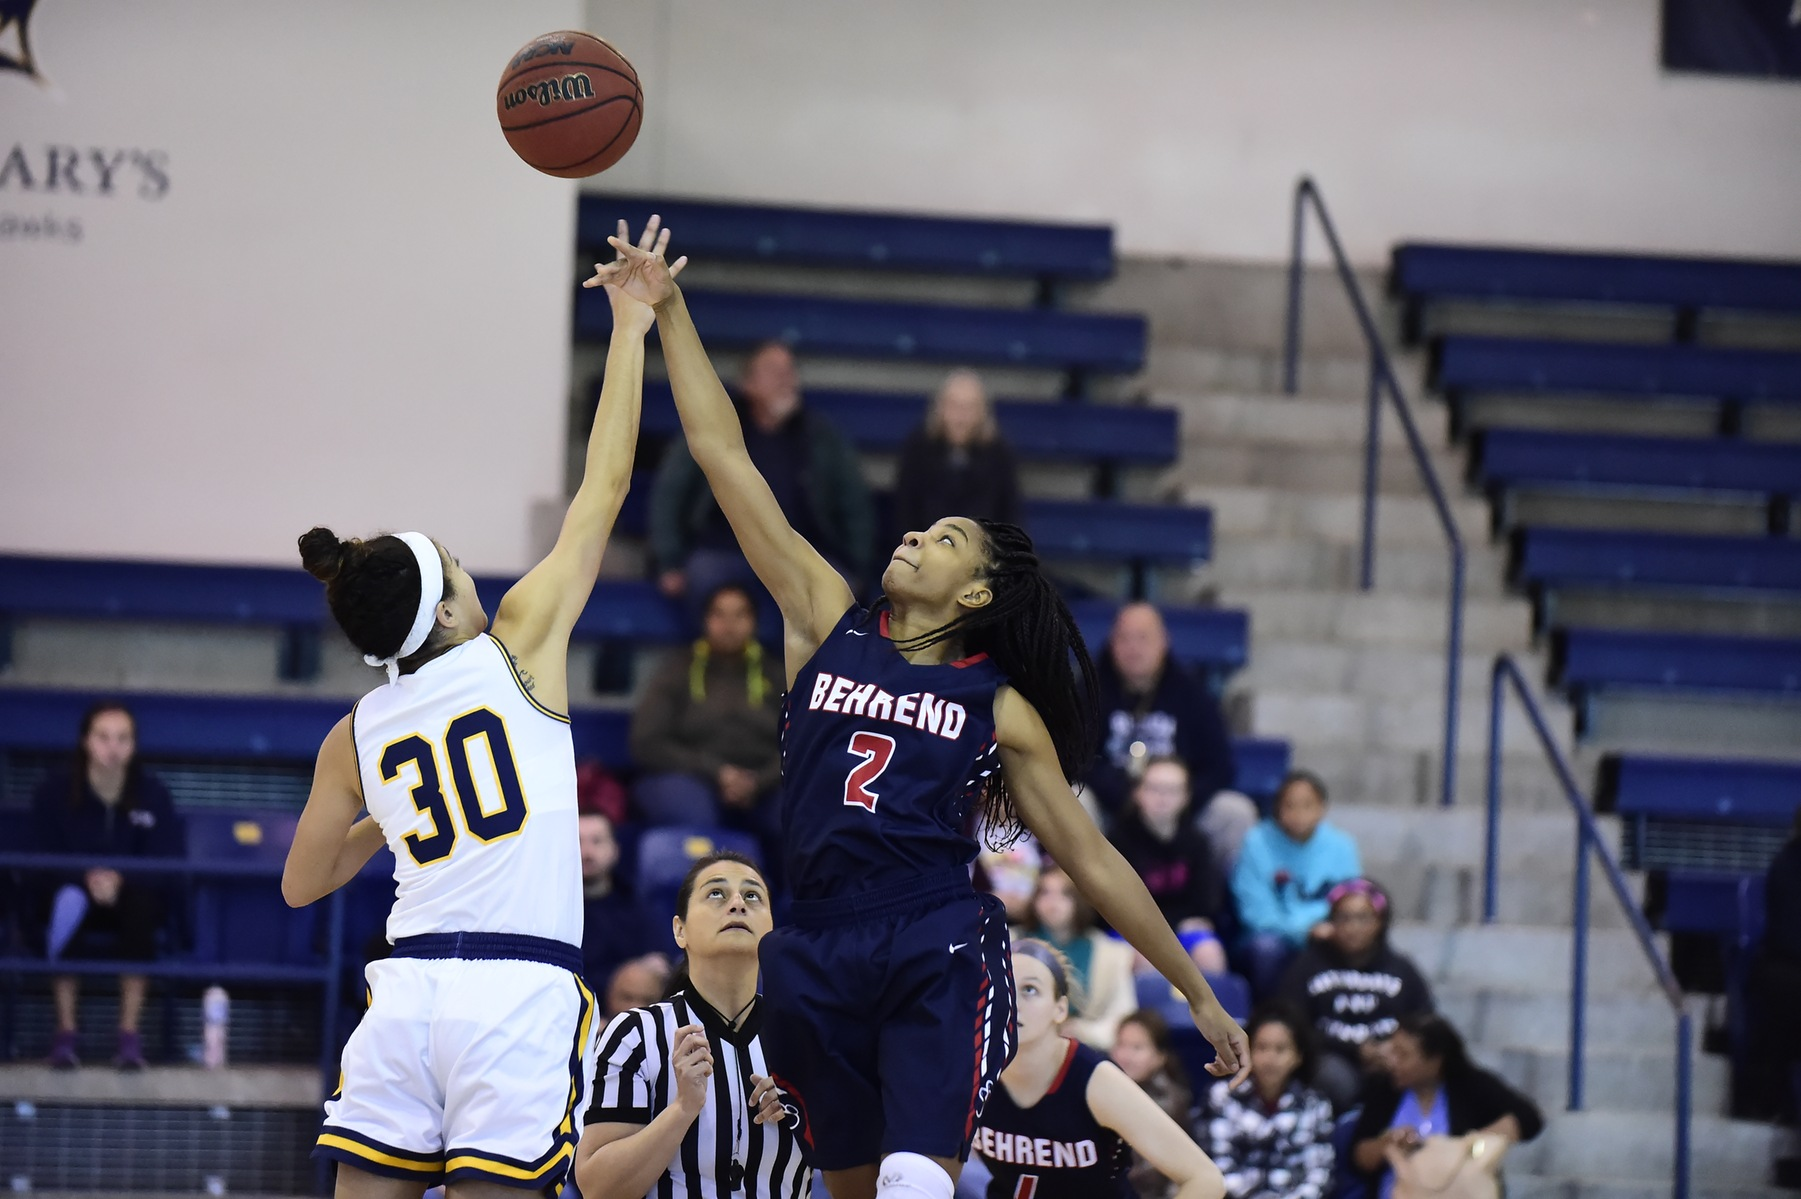 Women's Basketball Upsets Mt. Aloysius in AMCC Action